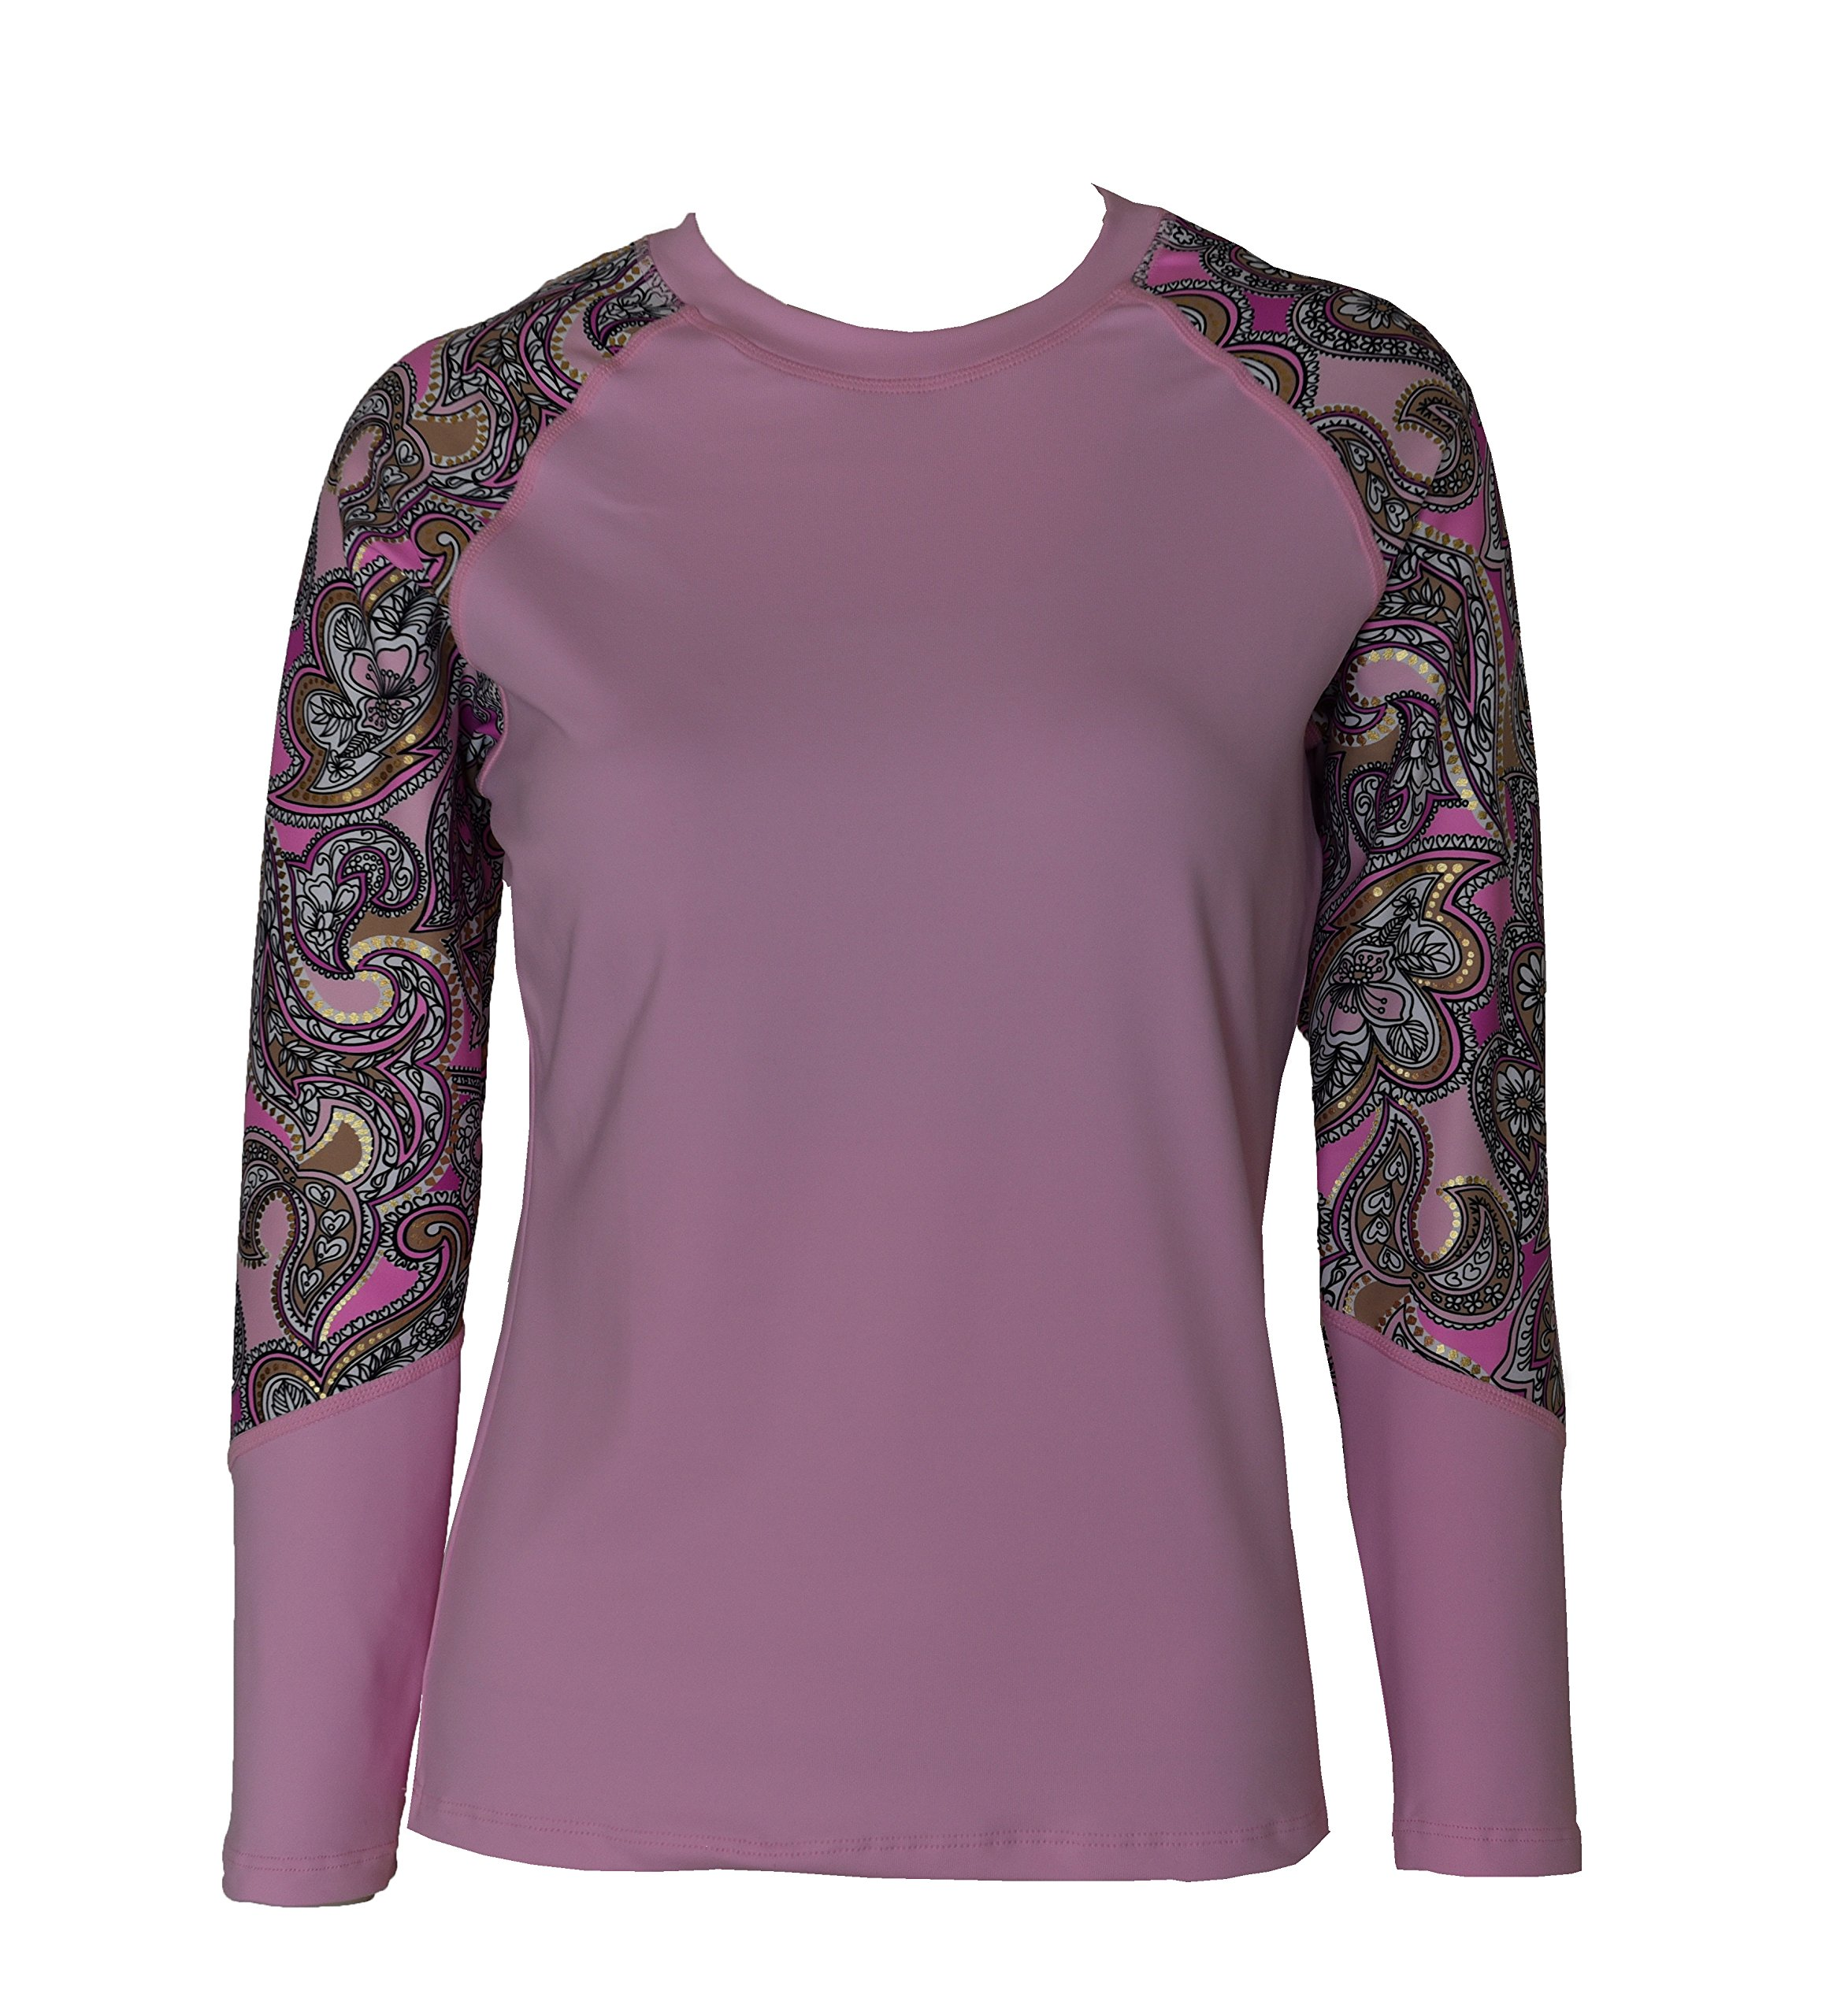 Private Island Hawaii Women UV Wetsuits Long Raglan Sleeve Rash Guard Top Pink with Pink Gold Spot XX-Large